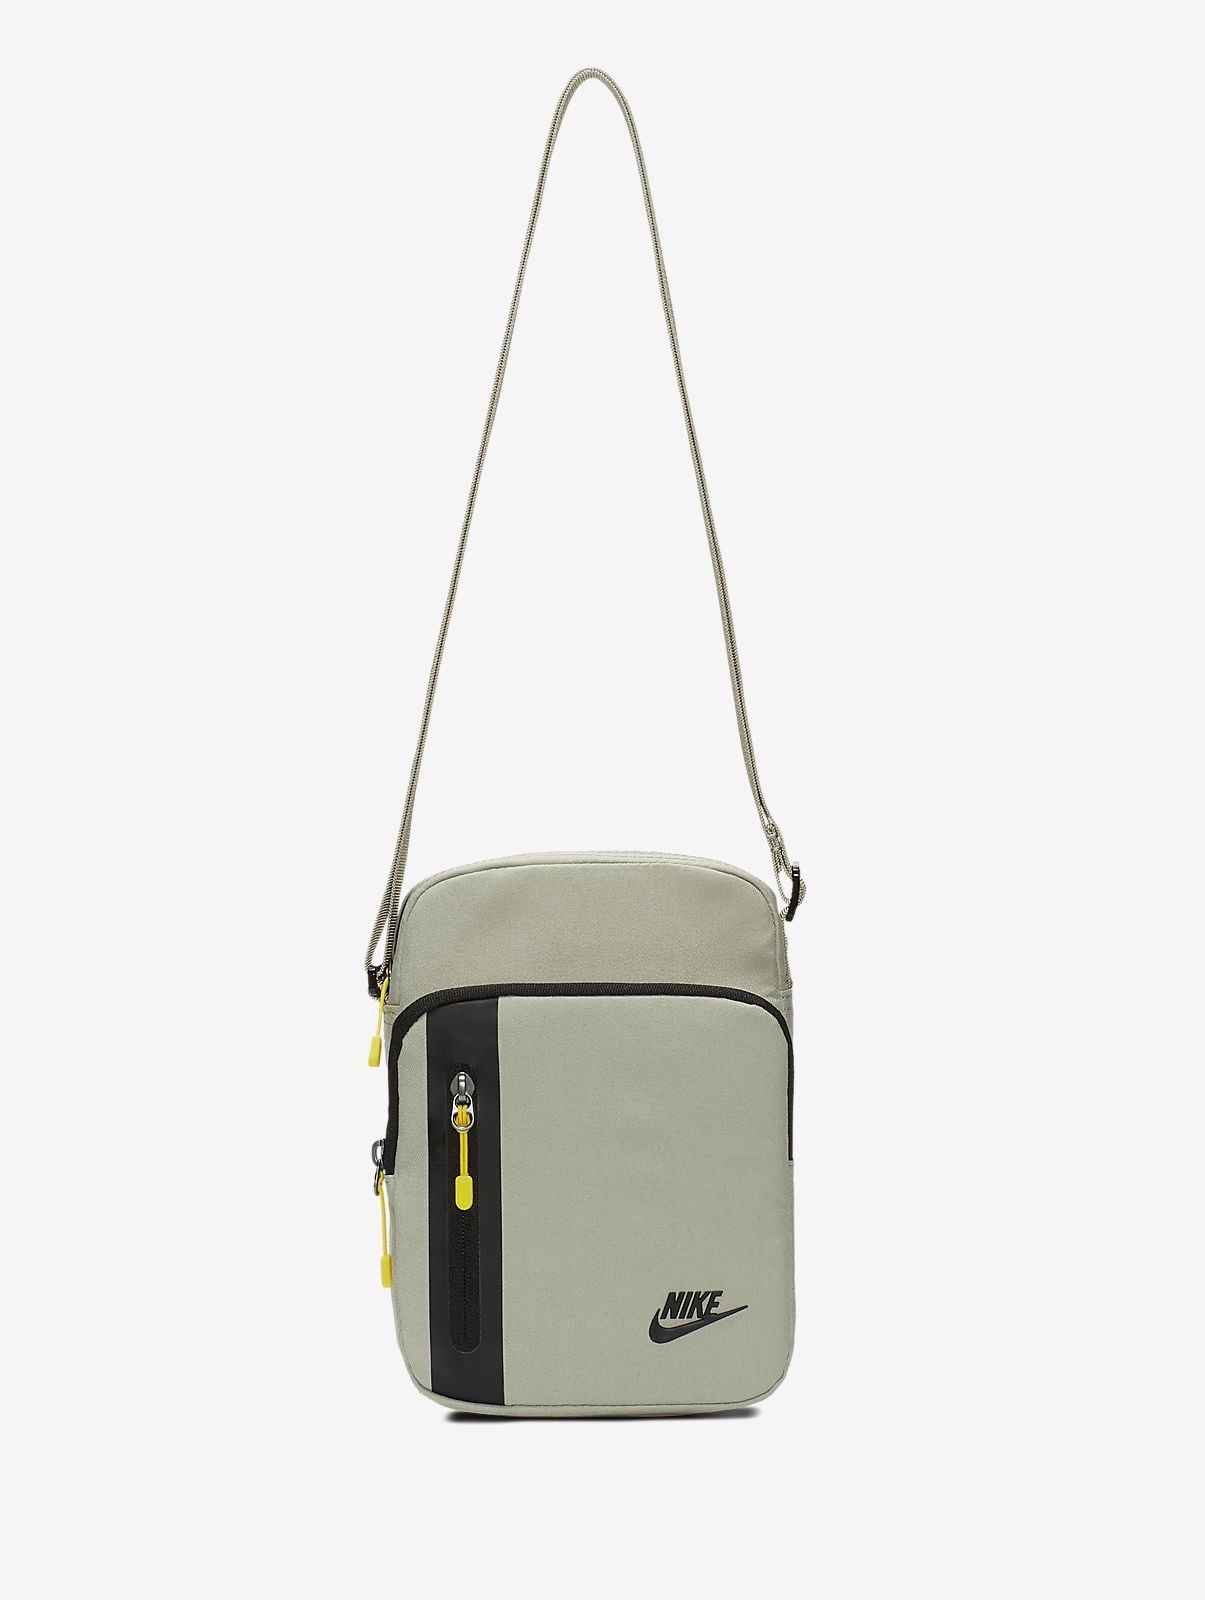 a37579a680 Nike Core Small Items 3.0 Bag in Spruce Fog Opti Yellow Black